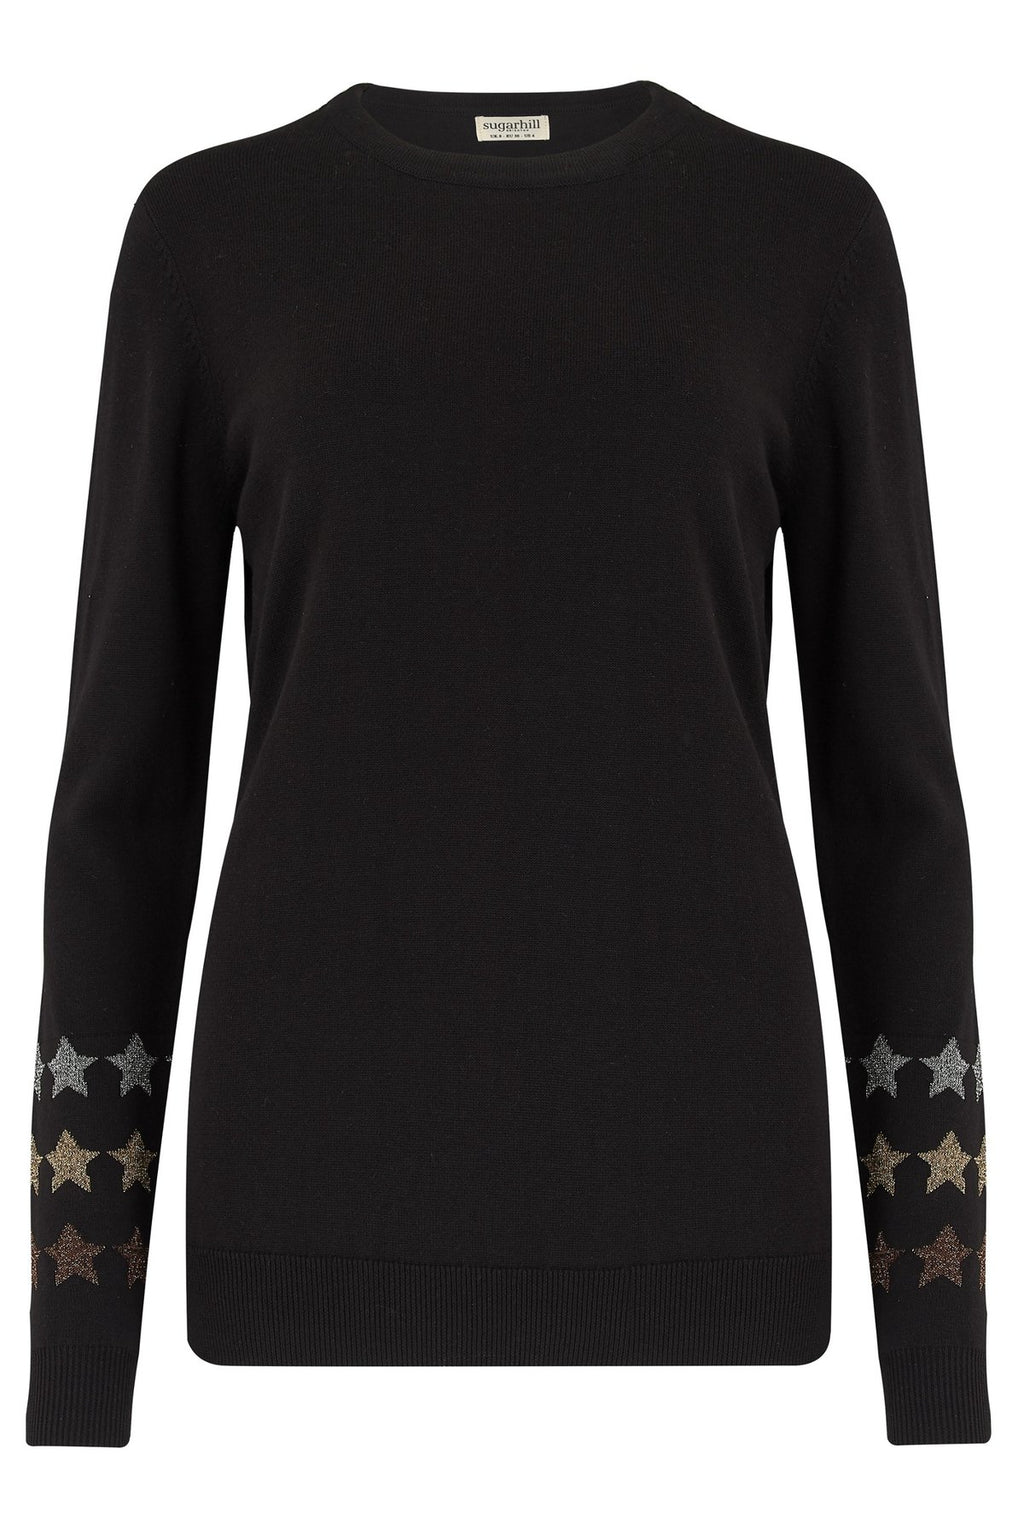 Sugarhill Brighton Rita Starlight Cuff Sweater